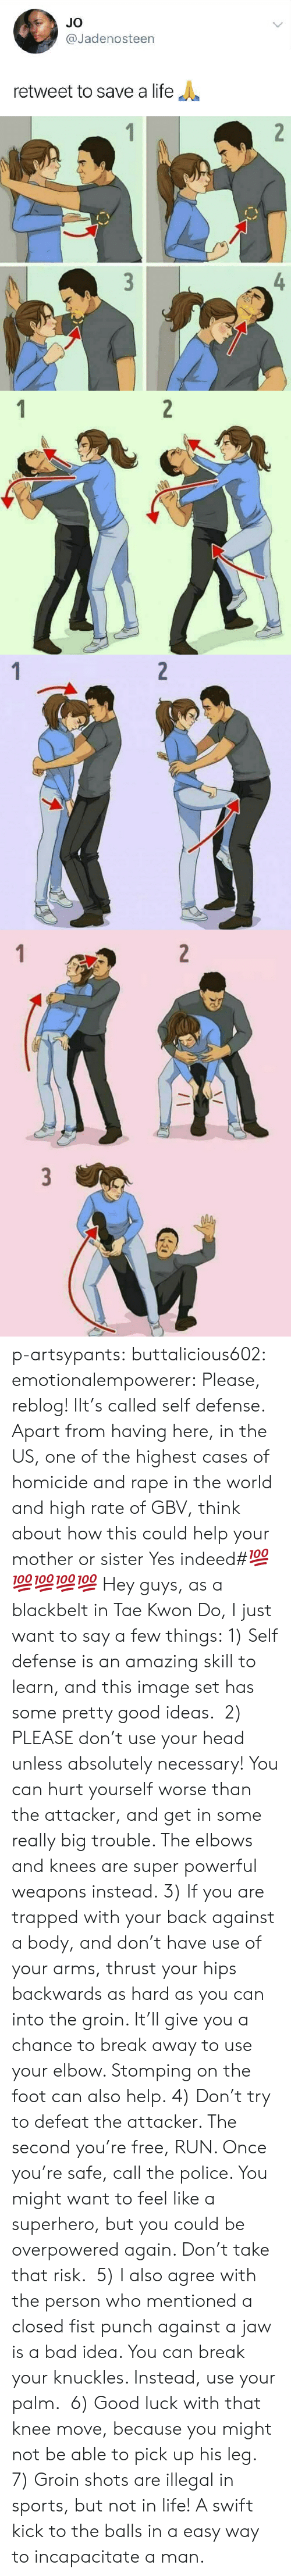 Elbows: JO  @Jadenosteen  retweet to save a life   3  4   2  1   2  1   2  3  1 p-artsypants: buttalicious602:  emotionalempowerer: Please, reblog! IIt's called self defense. Apart from having here, in the US, one of the highest cases of homicide and rape in the world and high rate of GBV, think about how this could help your mother or sister  Yes indeed#💯💯💯💯💯  Hey guys, as a blackbelt in Tae Kwon Do, I just want to say a few things: 1) Self defense is an amazing skill to learn, and this image set has some pretty good ideas.  2) PLEASE don't use your head unless absolutely necessary! You can hurt yourself worse than the attacker, and get in some really big trouble. The elbows and knees are super powerful weapons instead. 3) If you are trapped with your back against a body, and don't have use of your arms, thrust your hips backwards as hard as you can into the groin. It'll give you a chance to break away to use your elbow. Stomping on the foot can also help. 4) Don't try to defeat the attacker. The second you're free, RUN. Once you're safe, call the police. You might want to feel like a superhero, but you could be overpowered again. Don't take that risk.  5) I also agree with the person who mentioned a closed fist punch against a jaw is a bad idea. You can break your knuckles. Instead, use your palm.  6) Good luck with that knee move, because you might not be able to pick up his leg. 7) Groin shots are illegal in sports, but not in life! A swift kick to the balls in a easy way to incapacitate a man.